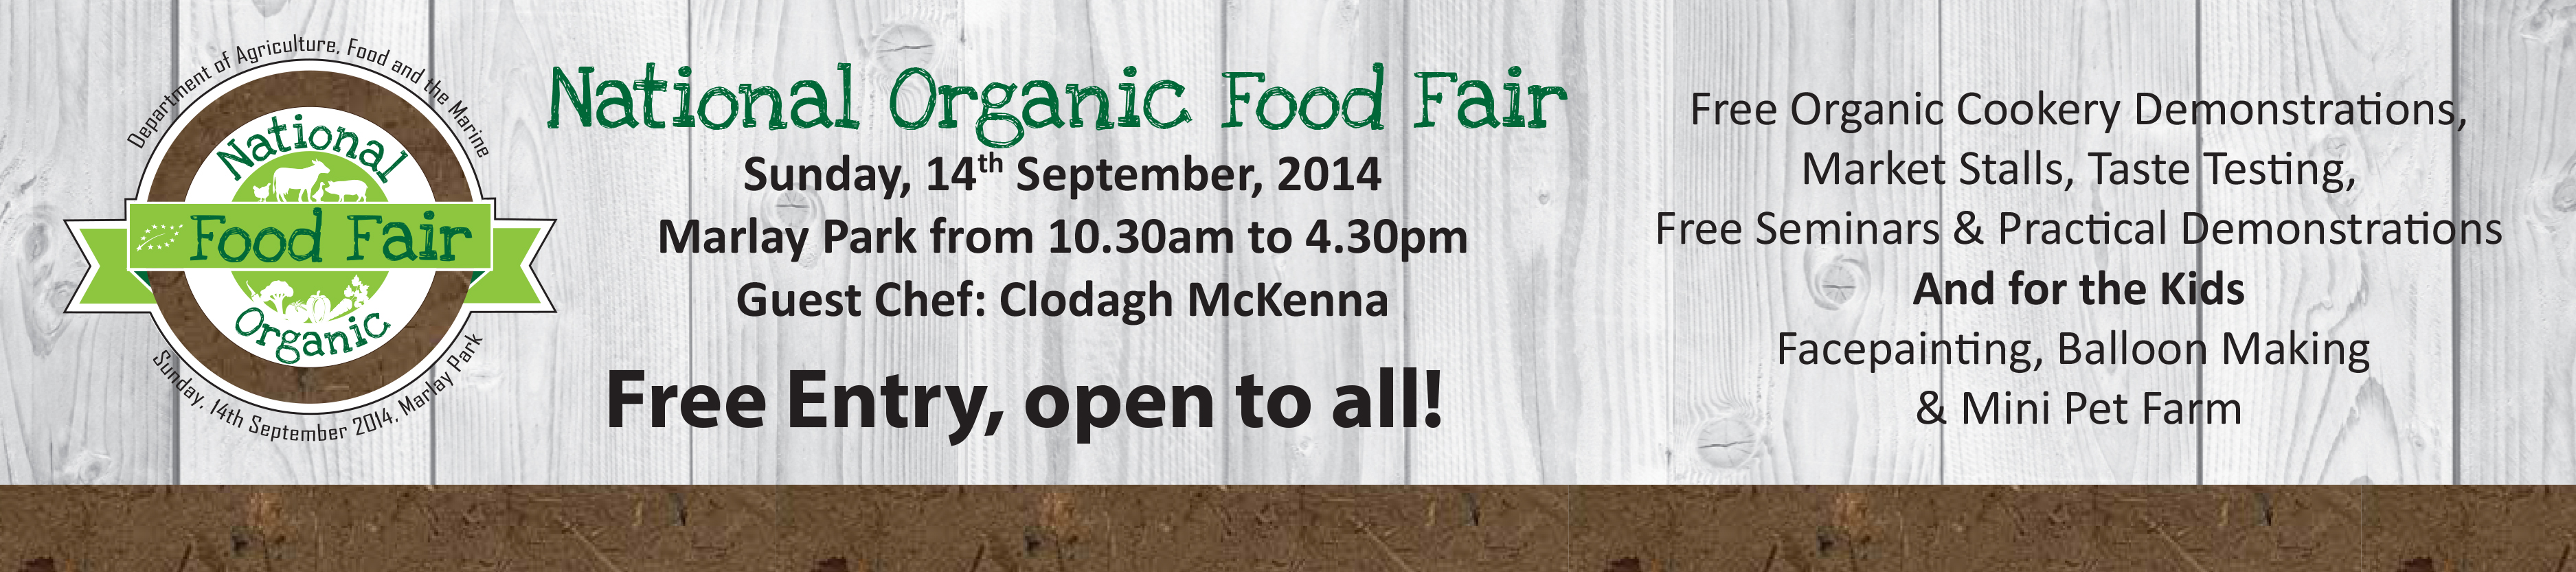 National Organic Food Fair